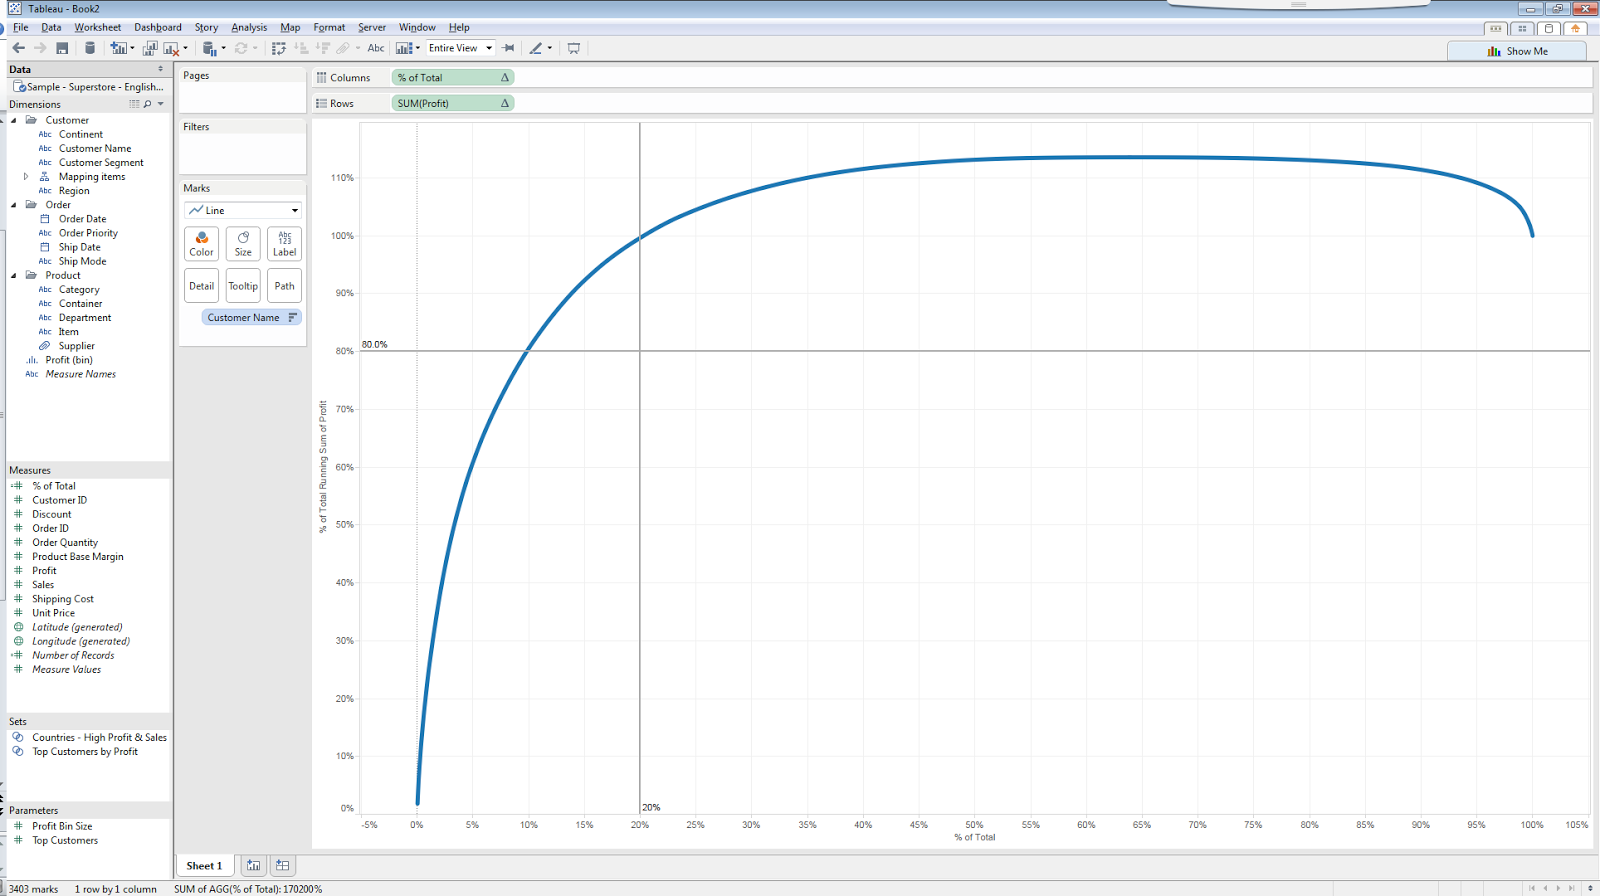 Help Needed: Multiple Curves in Pareto Chart